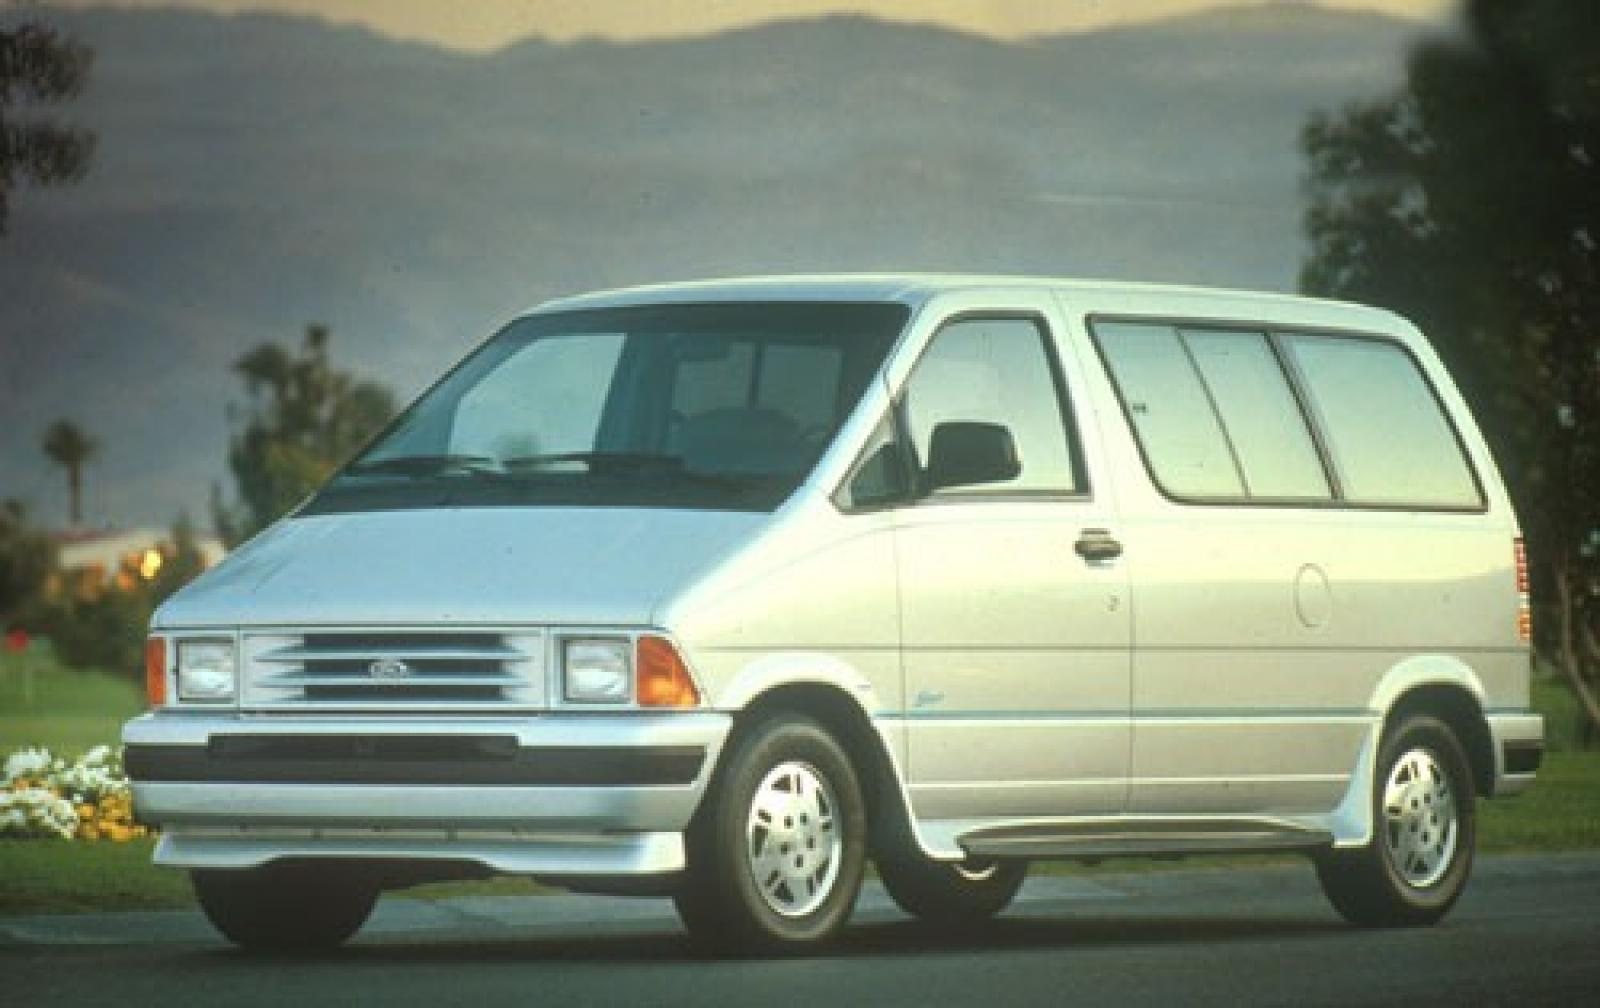 Ford 12 Passenger Van >> 1990 Ford Aerostar - Information and photos - Zomb Drive